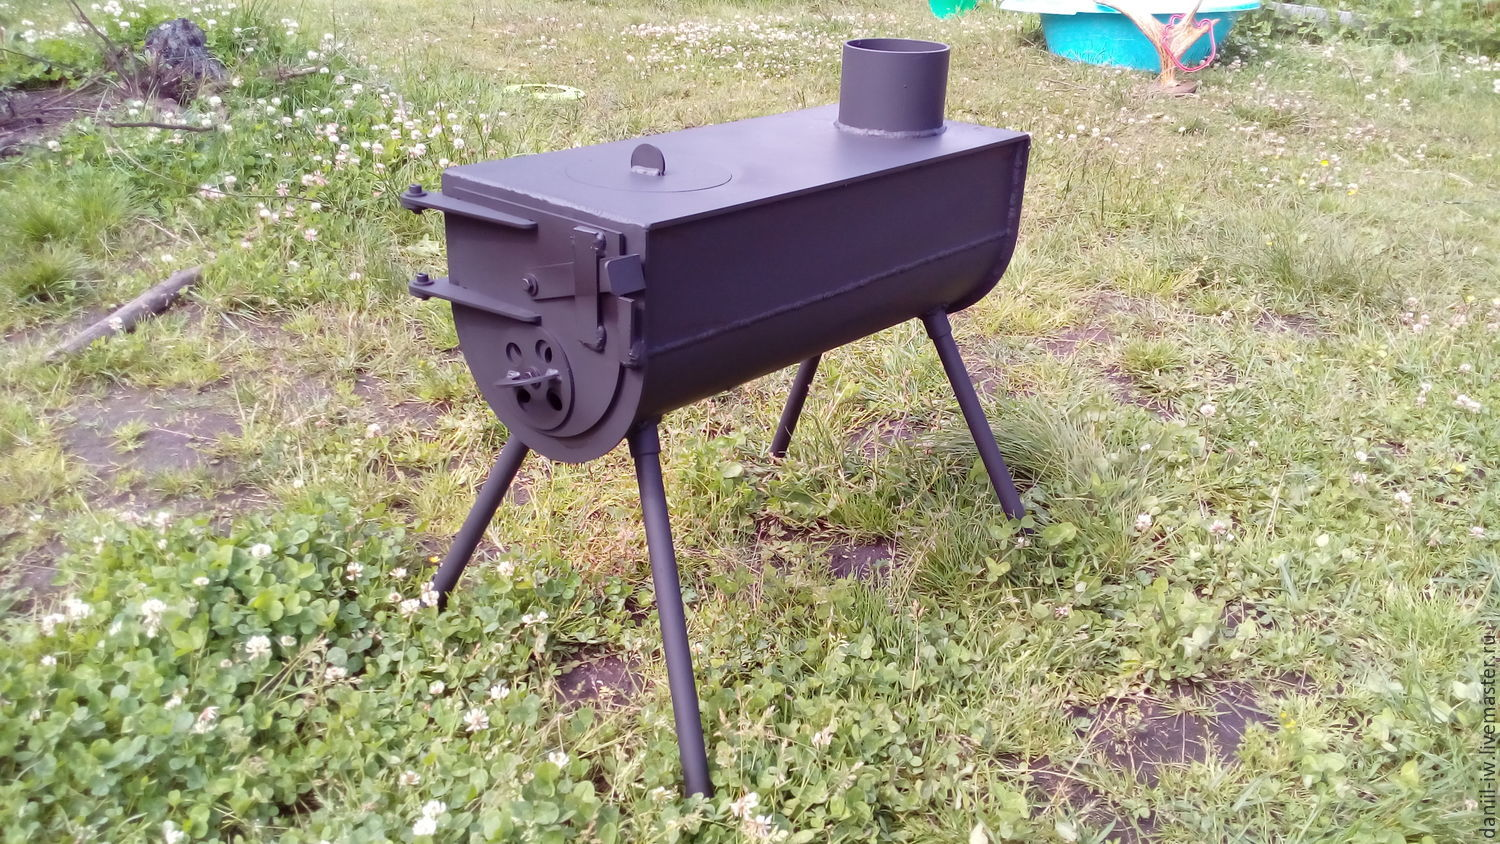 Camping stove,wood burning, Fireplaces, St. Petersburg,  Фото №1